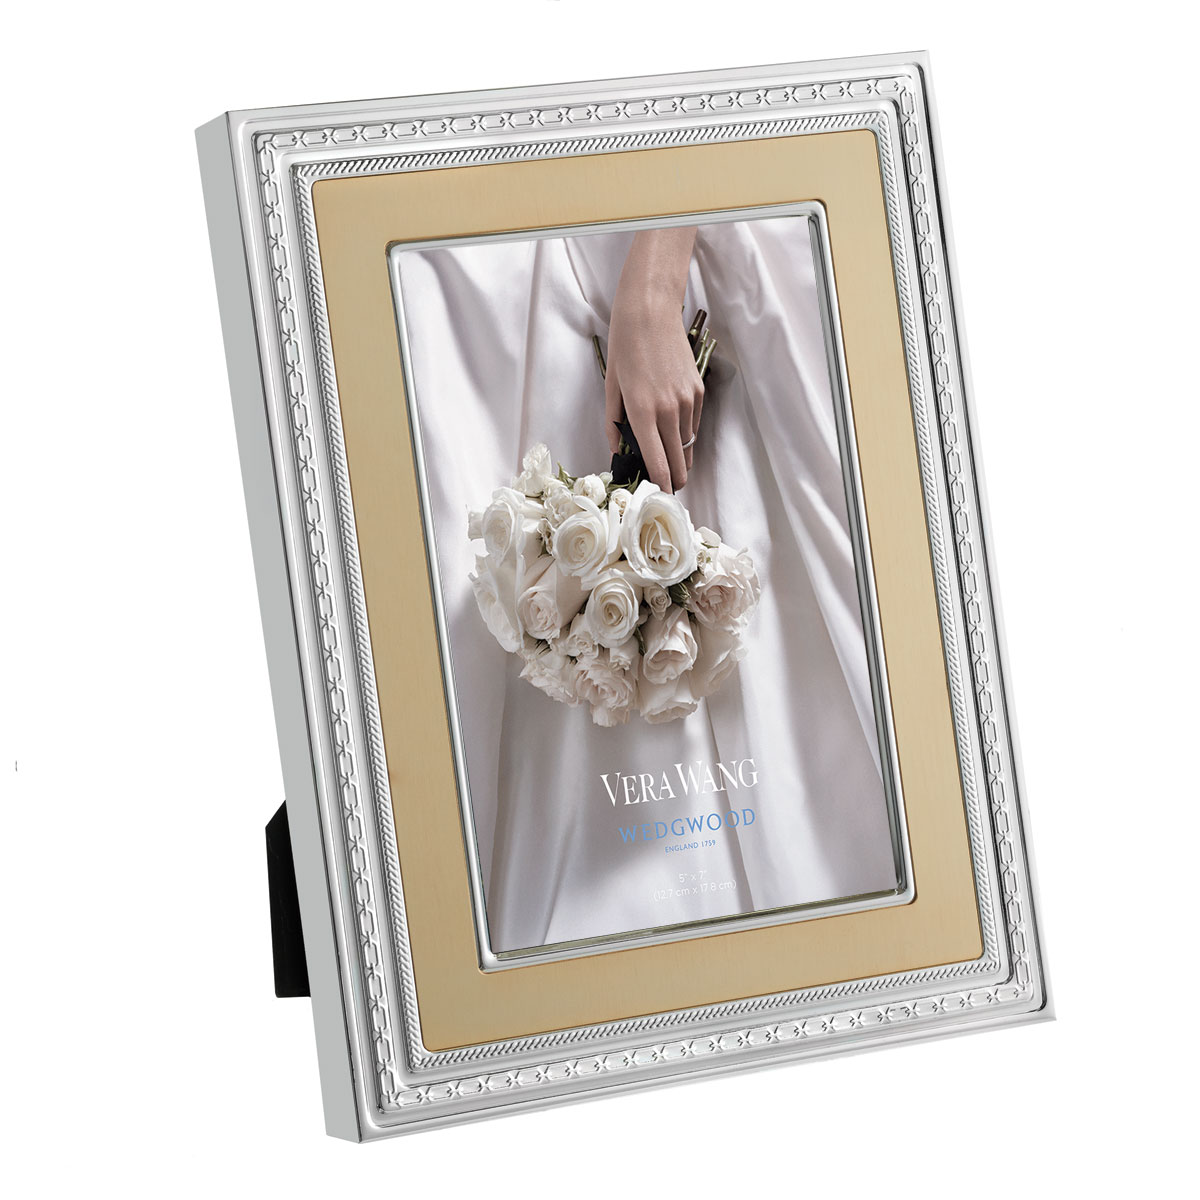 Vera Wang Wedgwood With Love Gold 5x7 Frame